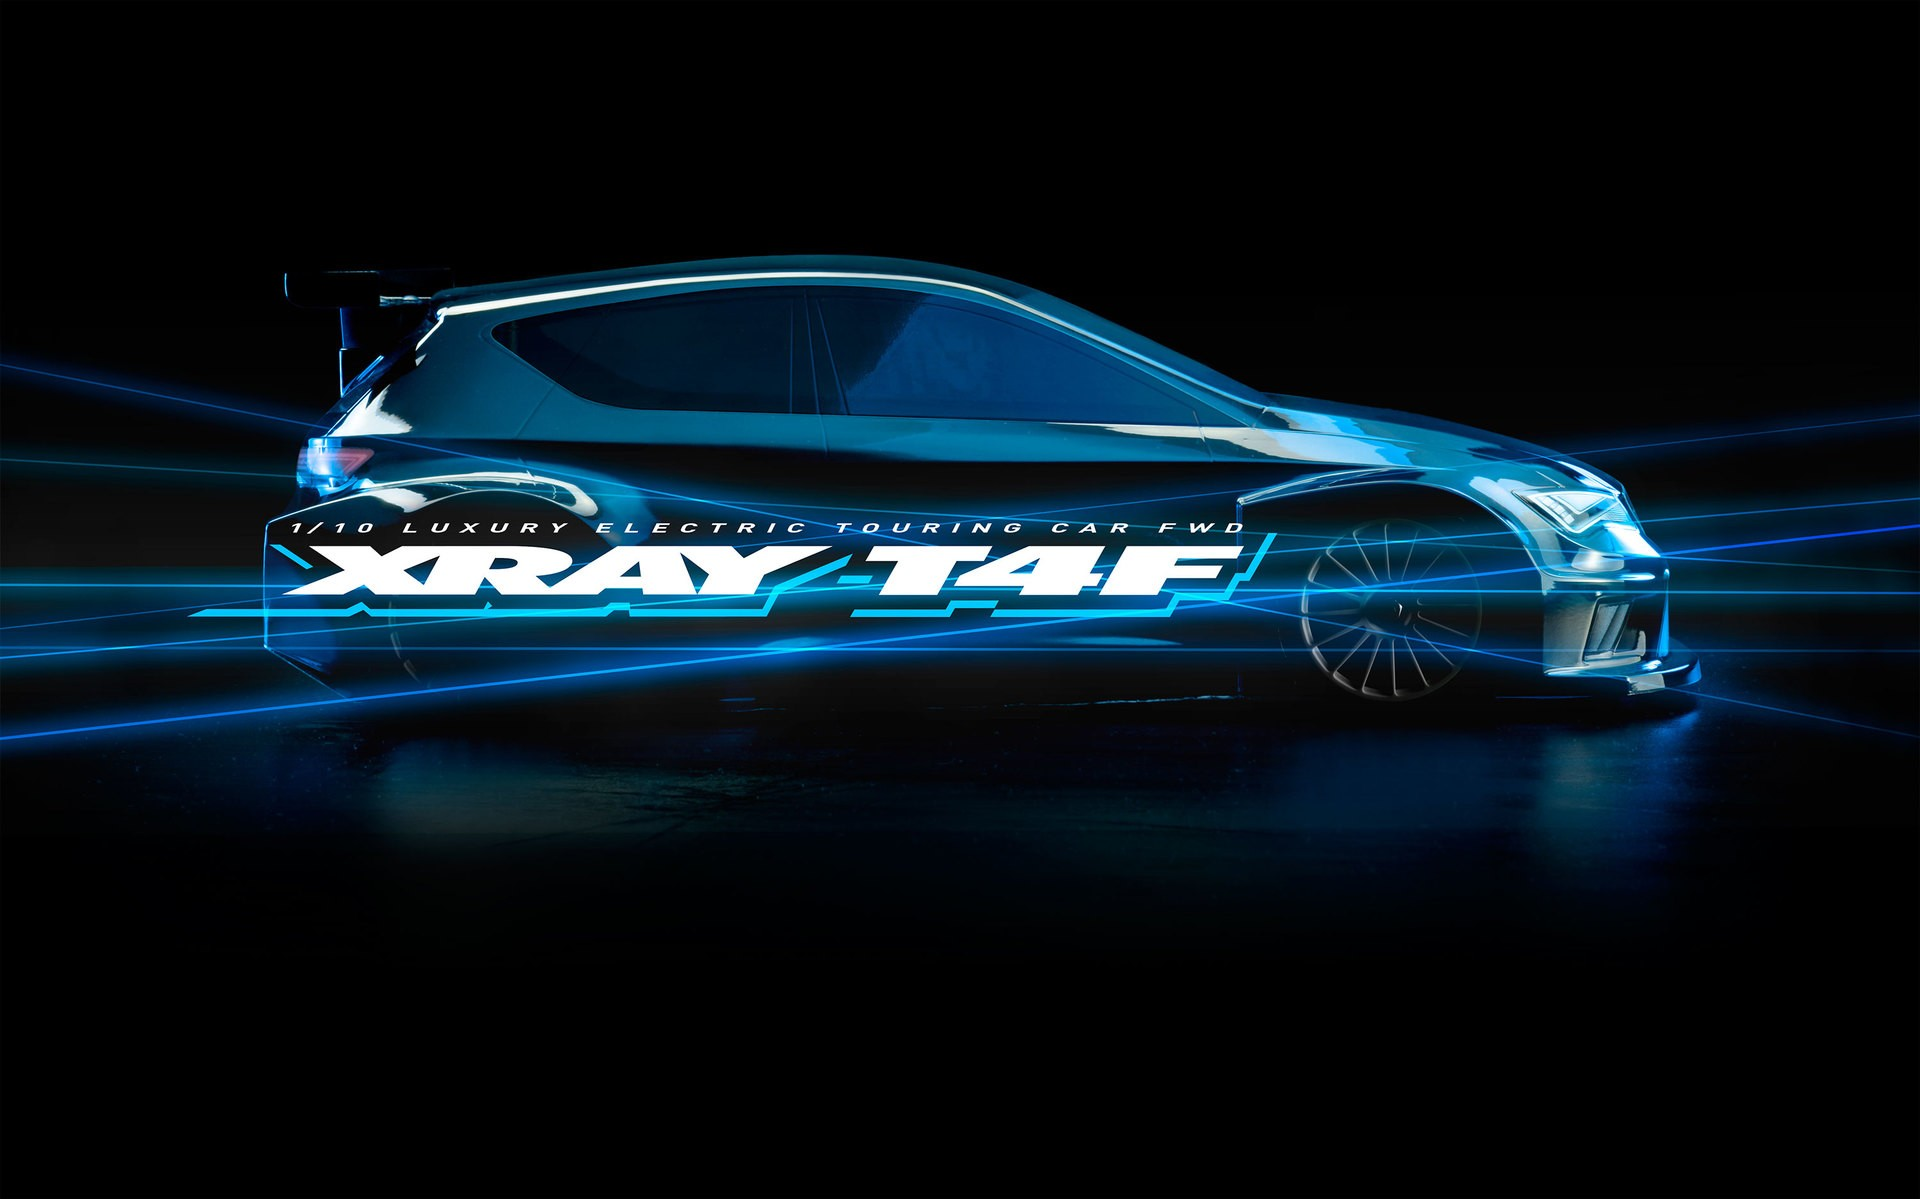 XRAY T4F'19 1/10 ELECTRIC FWD 2WD